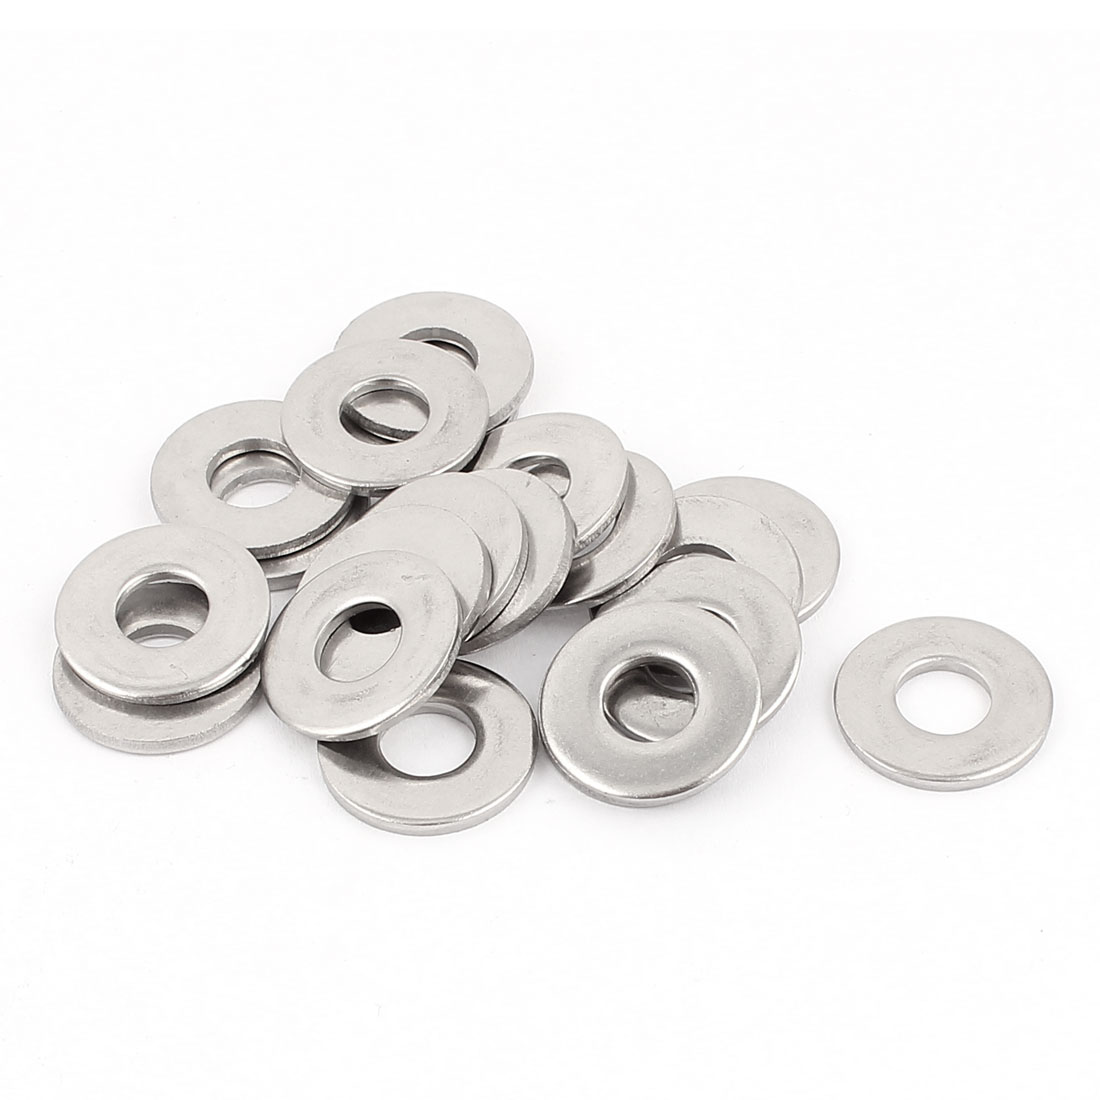 Bolt Base 304 Stainless Steel 8x20x2mm Flat Washer Gaskets Fasteners 20pcs